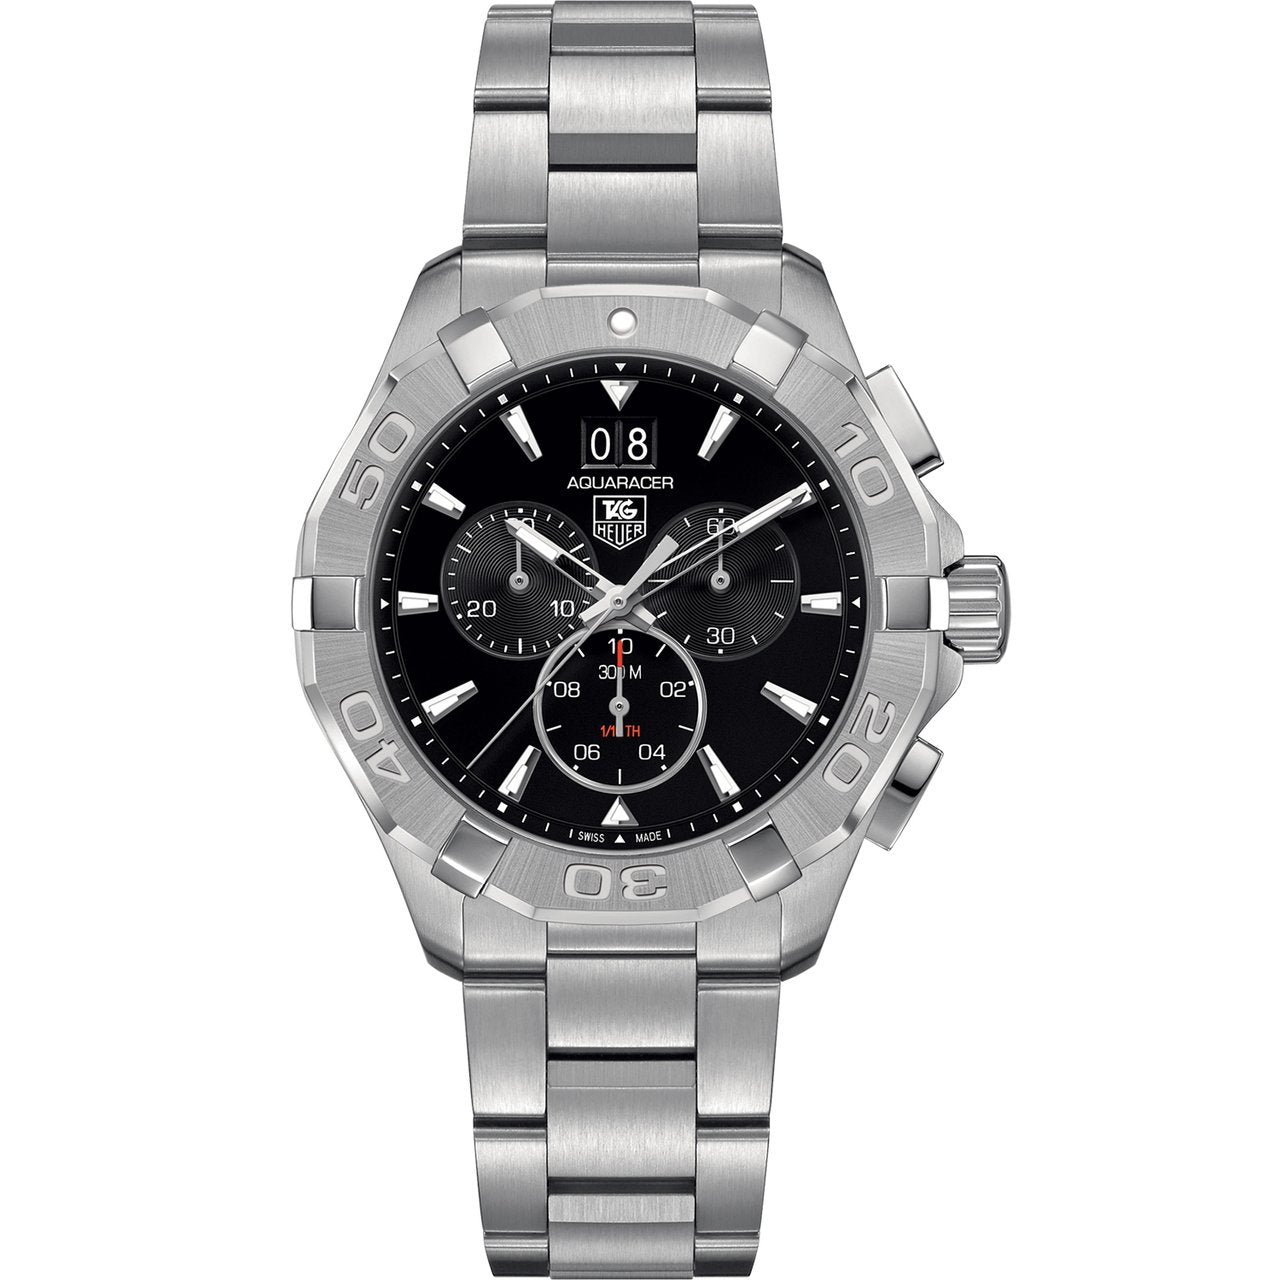 TAG Heuer Men's Aquaracer Chronograph Black Dial Watch with Polished Steel Bracelet